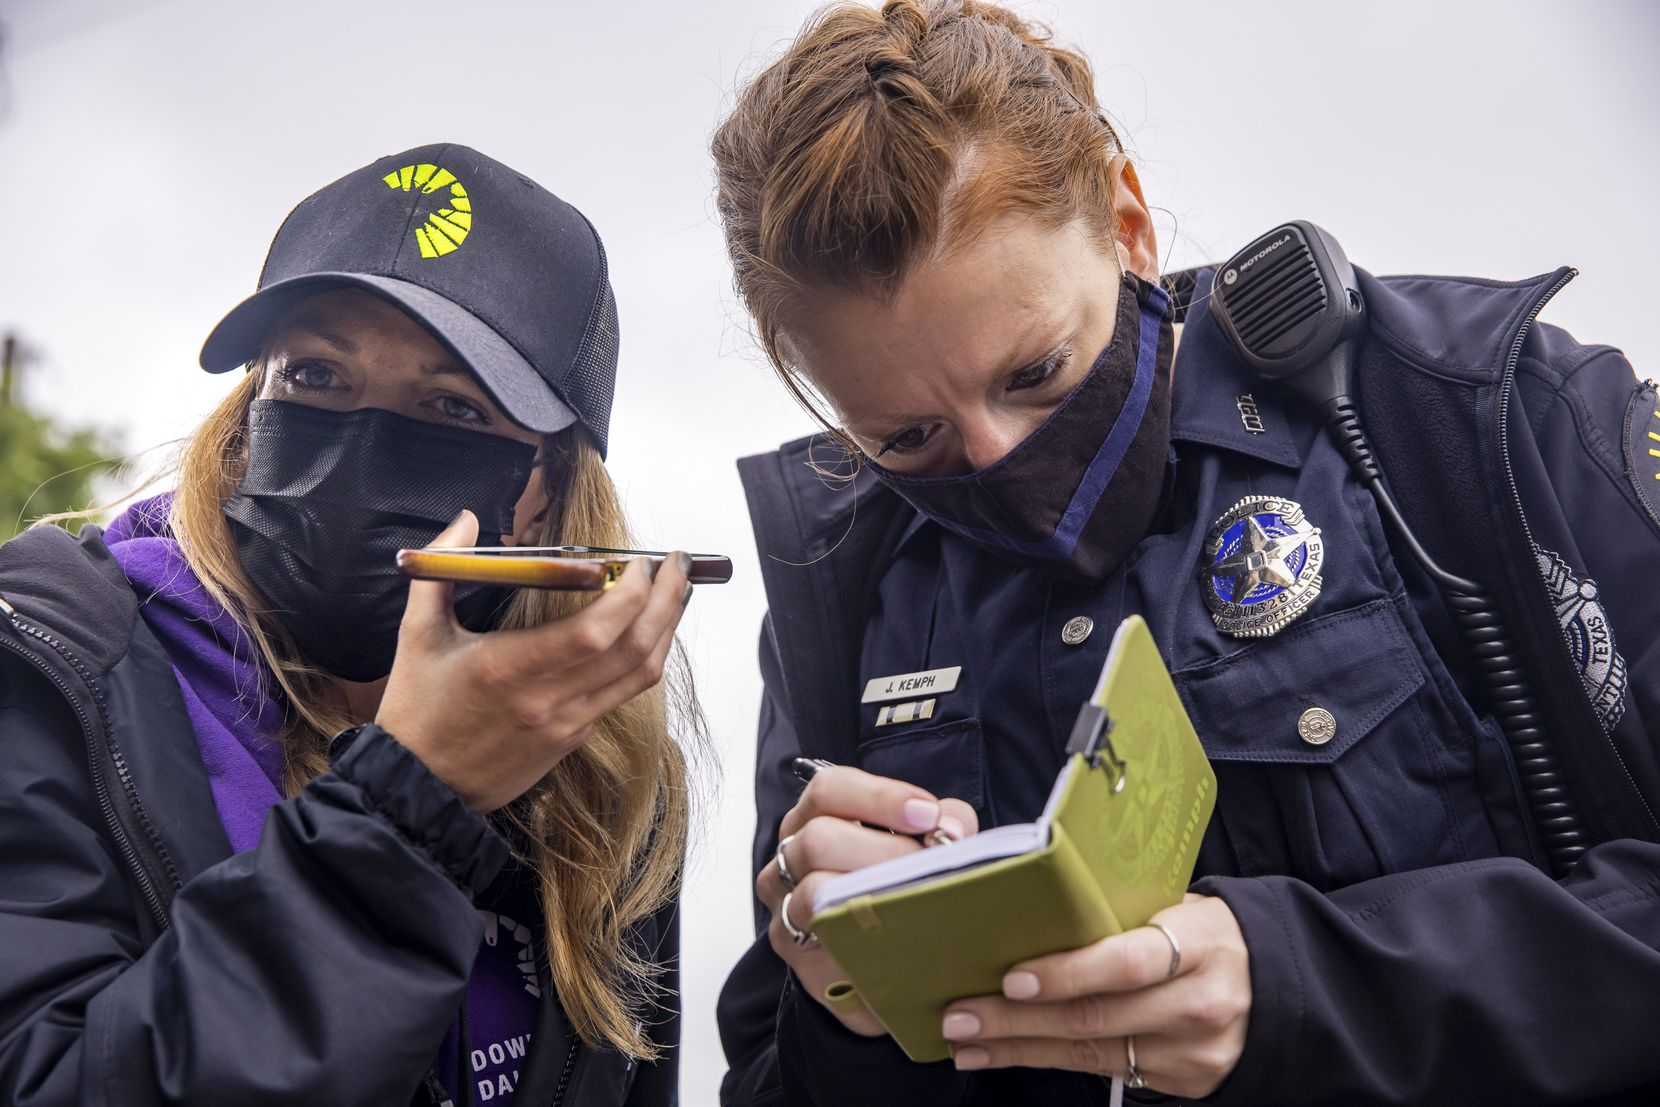 Homeless outreach coordinator Samantha Moran (left) and Dallas police Officer Jennafer Kemph made phone calls to homelessness resource agencies and compared notes as they tried to help an unhoused woman experiencing mental deterioration at The Bridge in downtown Dallas.